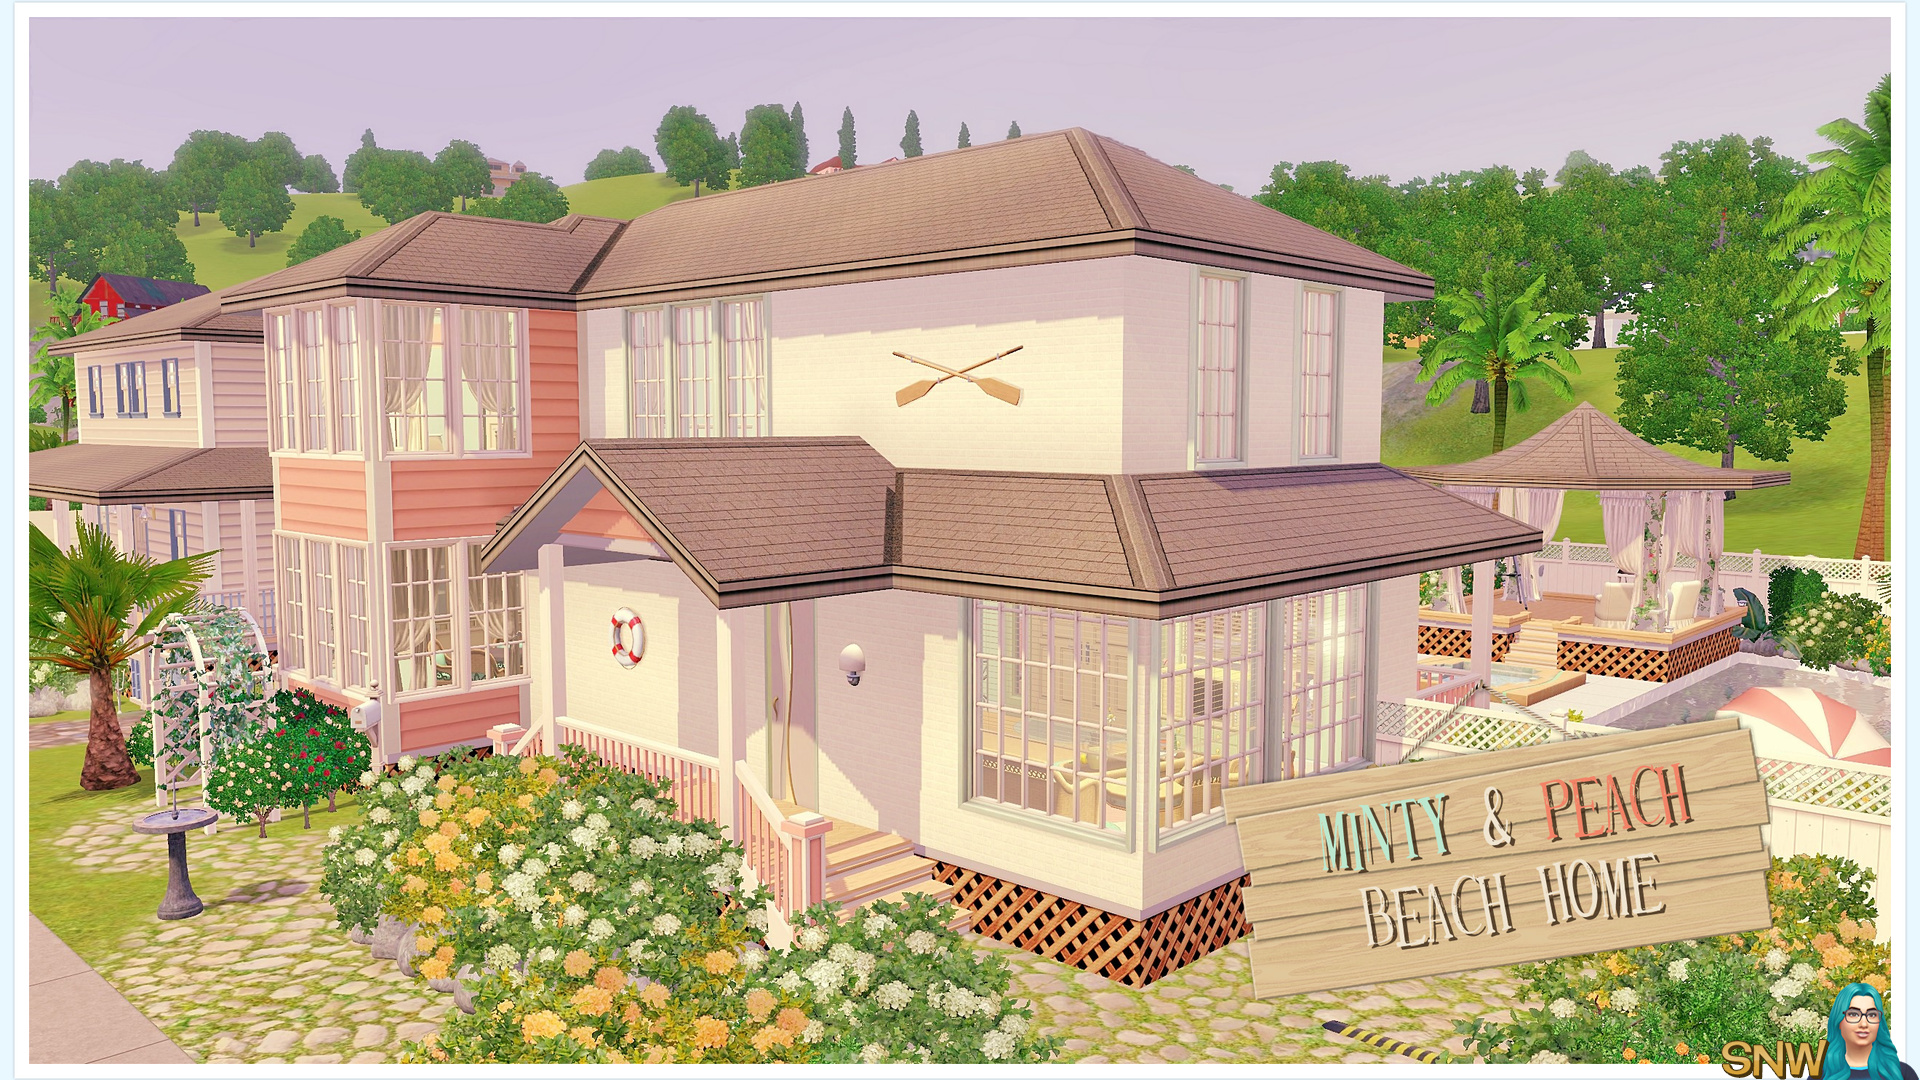 Minty peach beach house snw for Beach house 3 free download